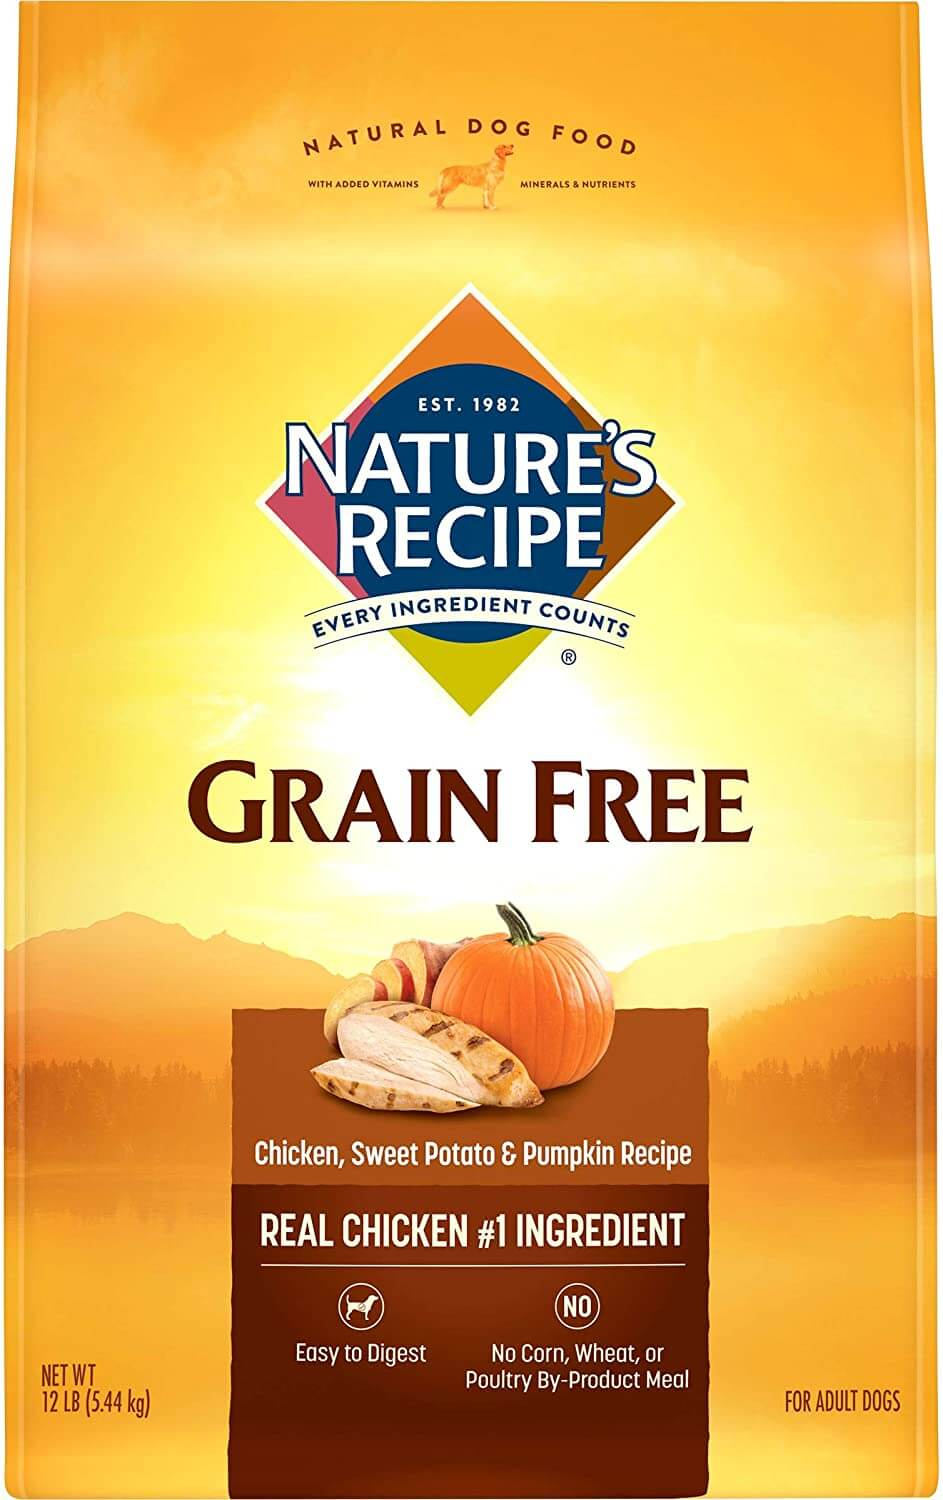 Nature's Recipe Dog Food for IBD